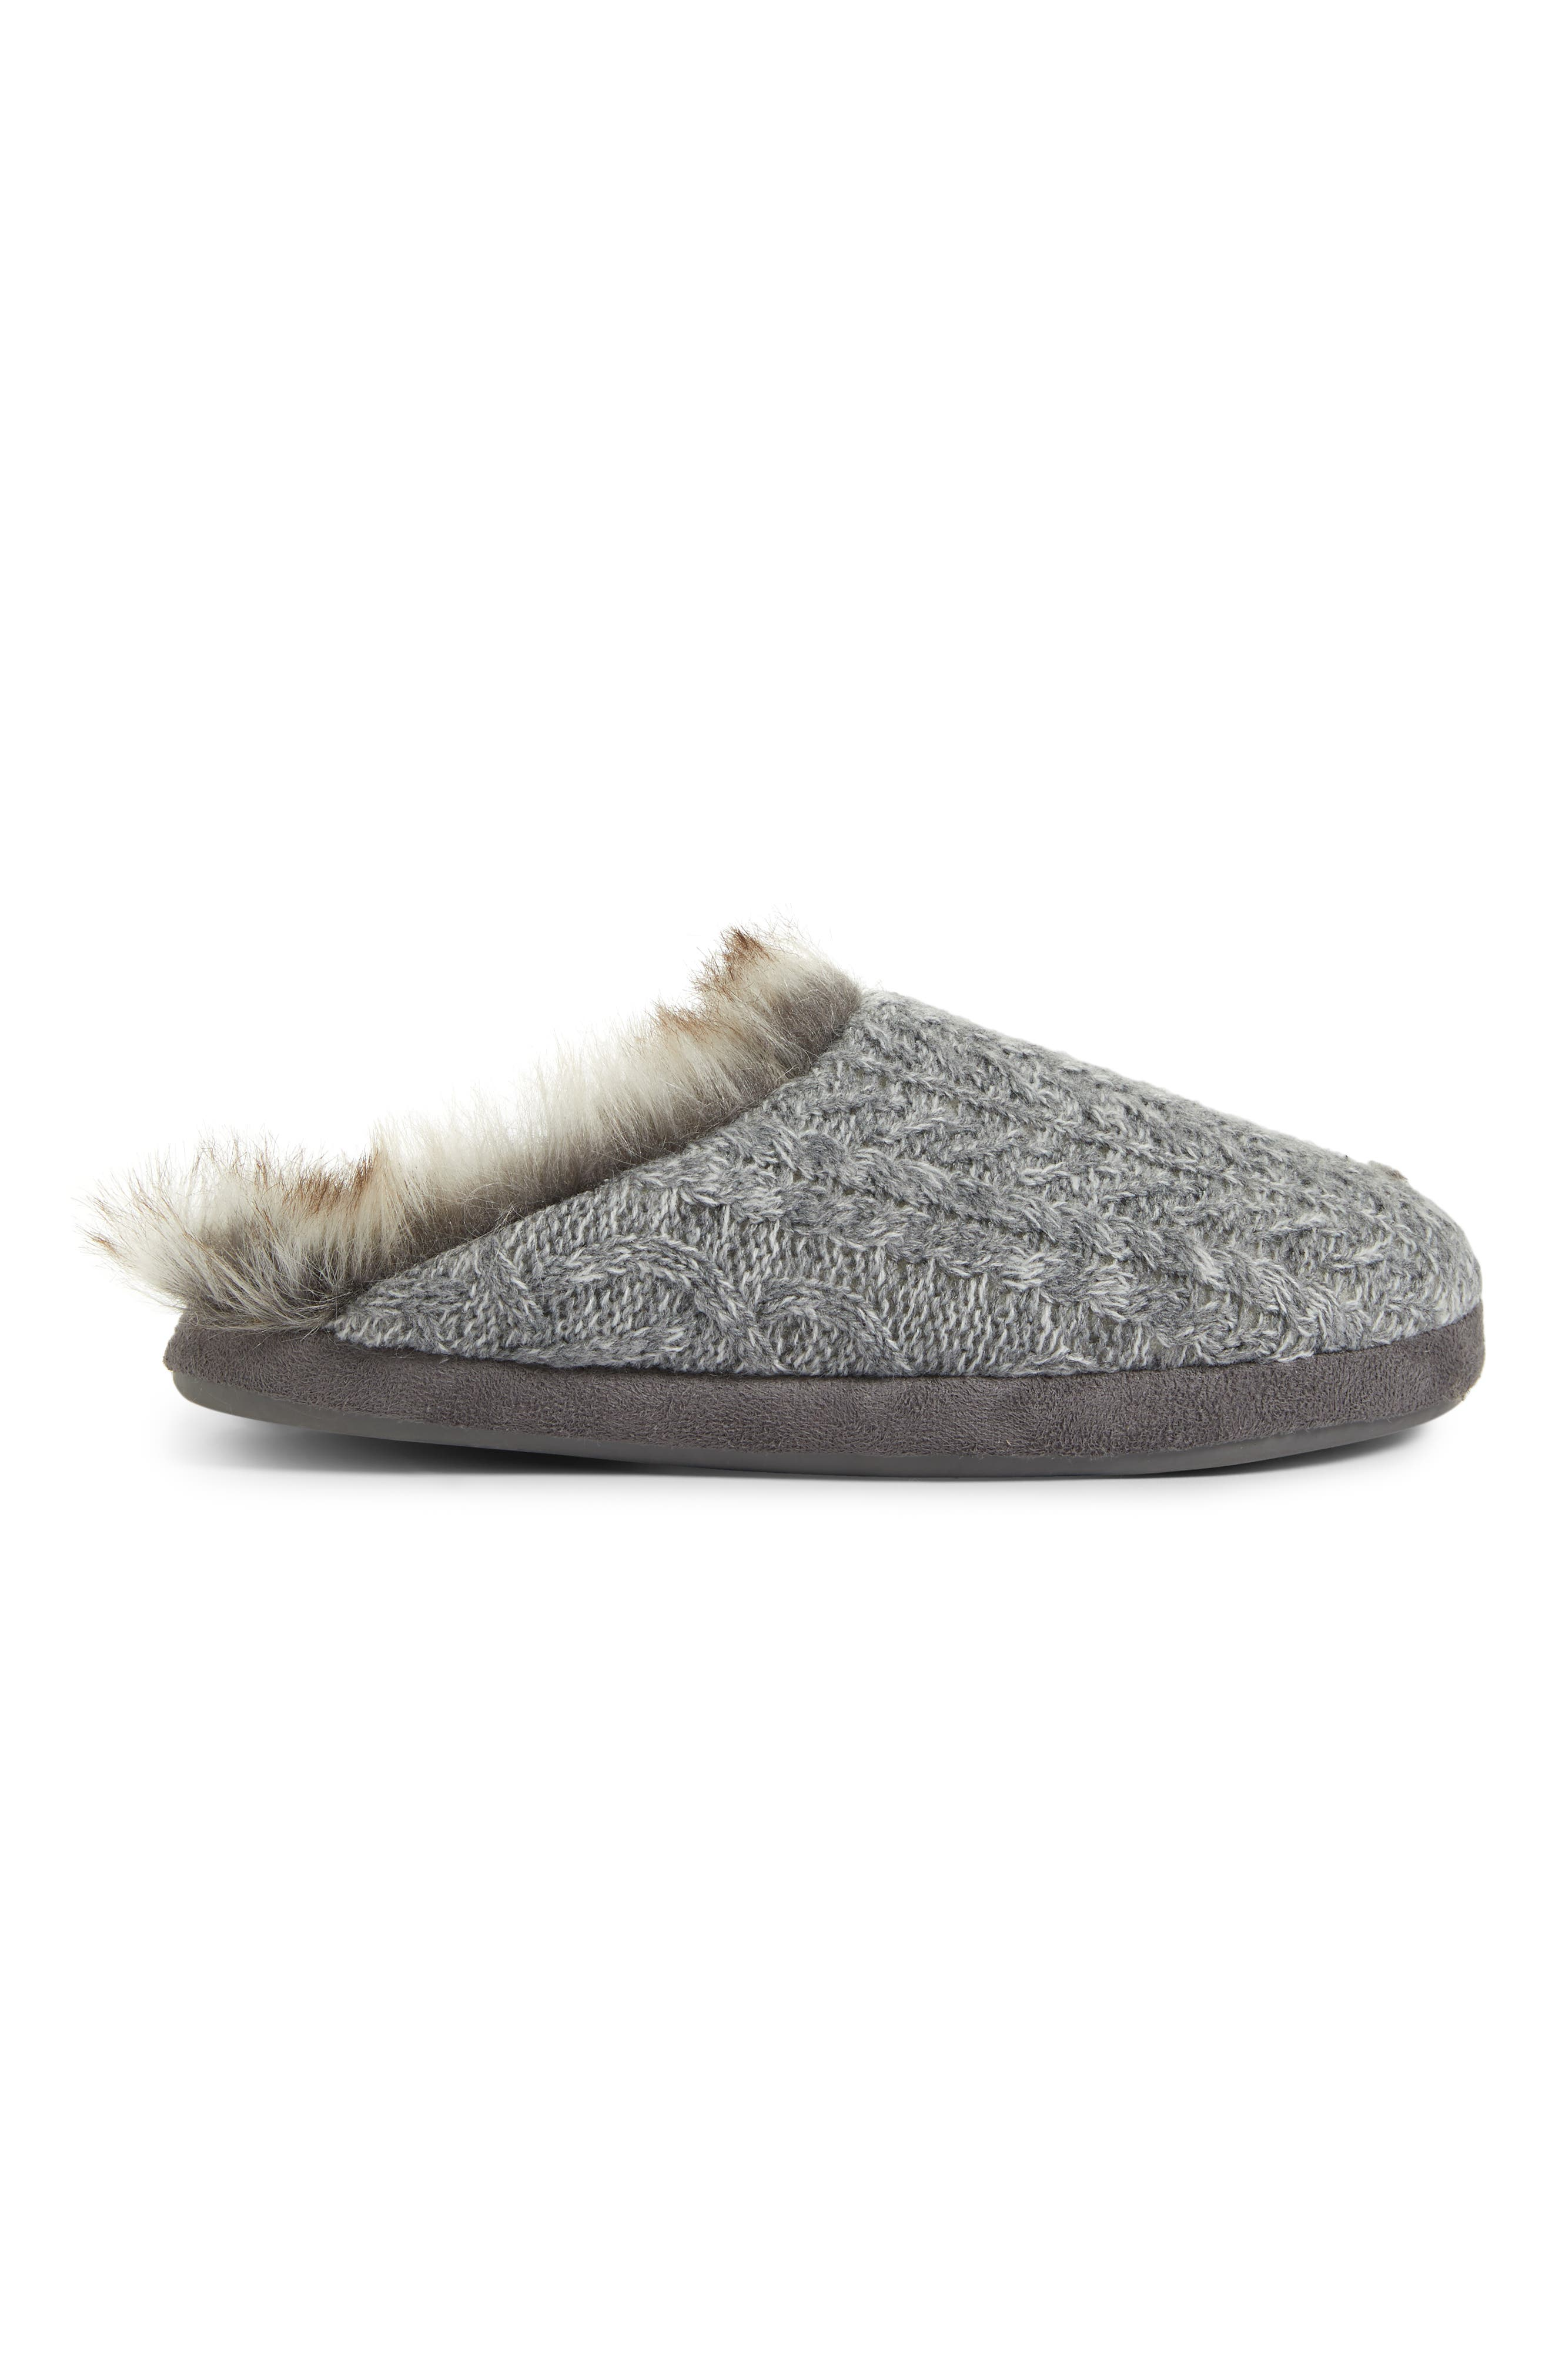 PJ SALVAGE, Faux Fur Trim Cable Knit Slipper, Alternate thumbnail 3, color, HEATHER GREY